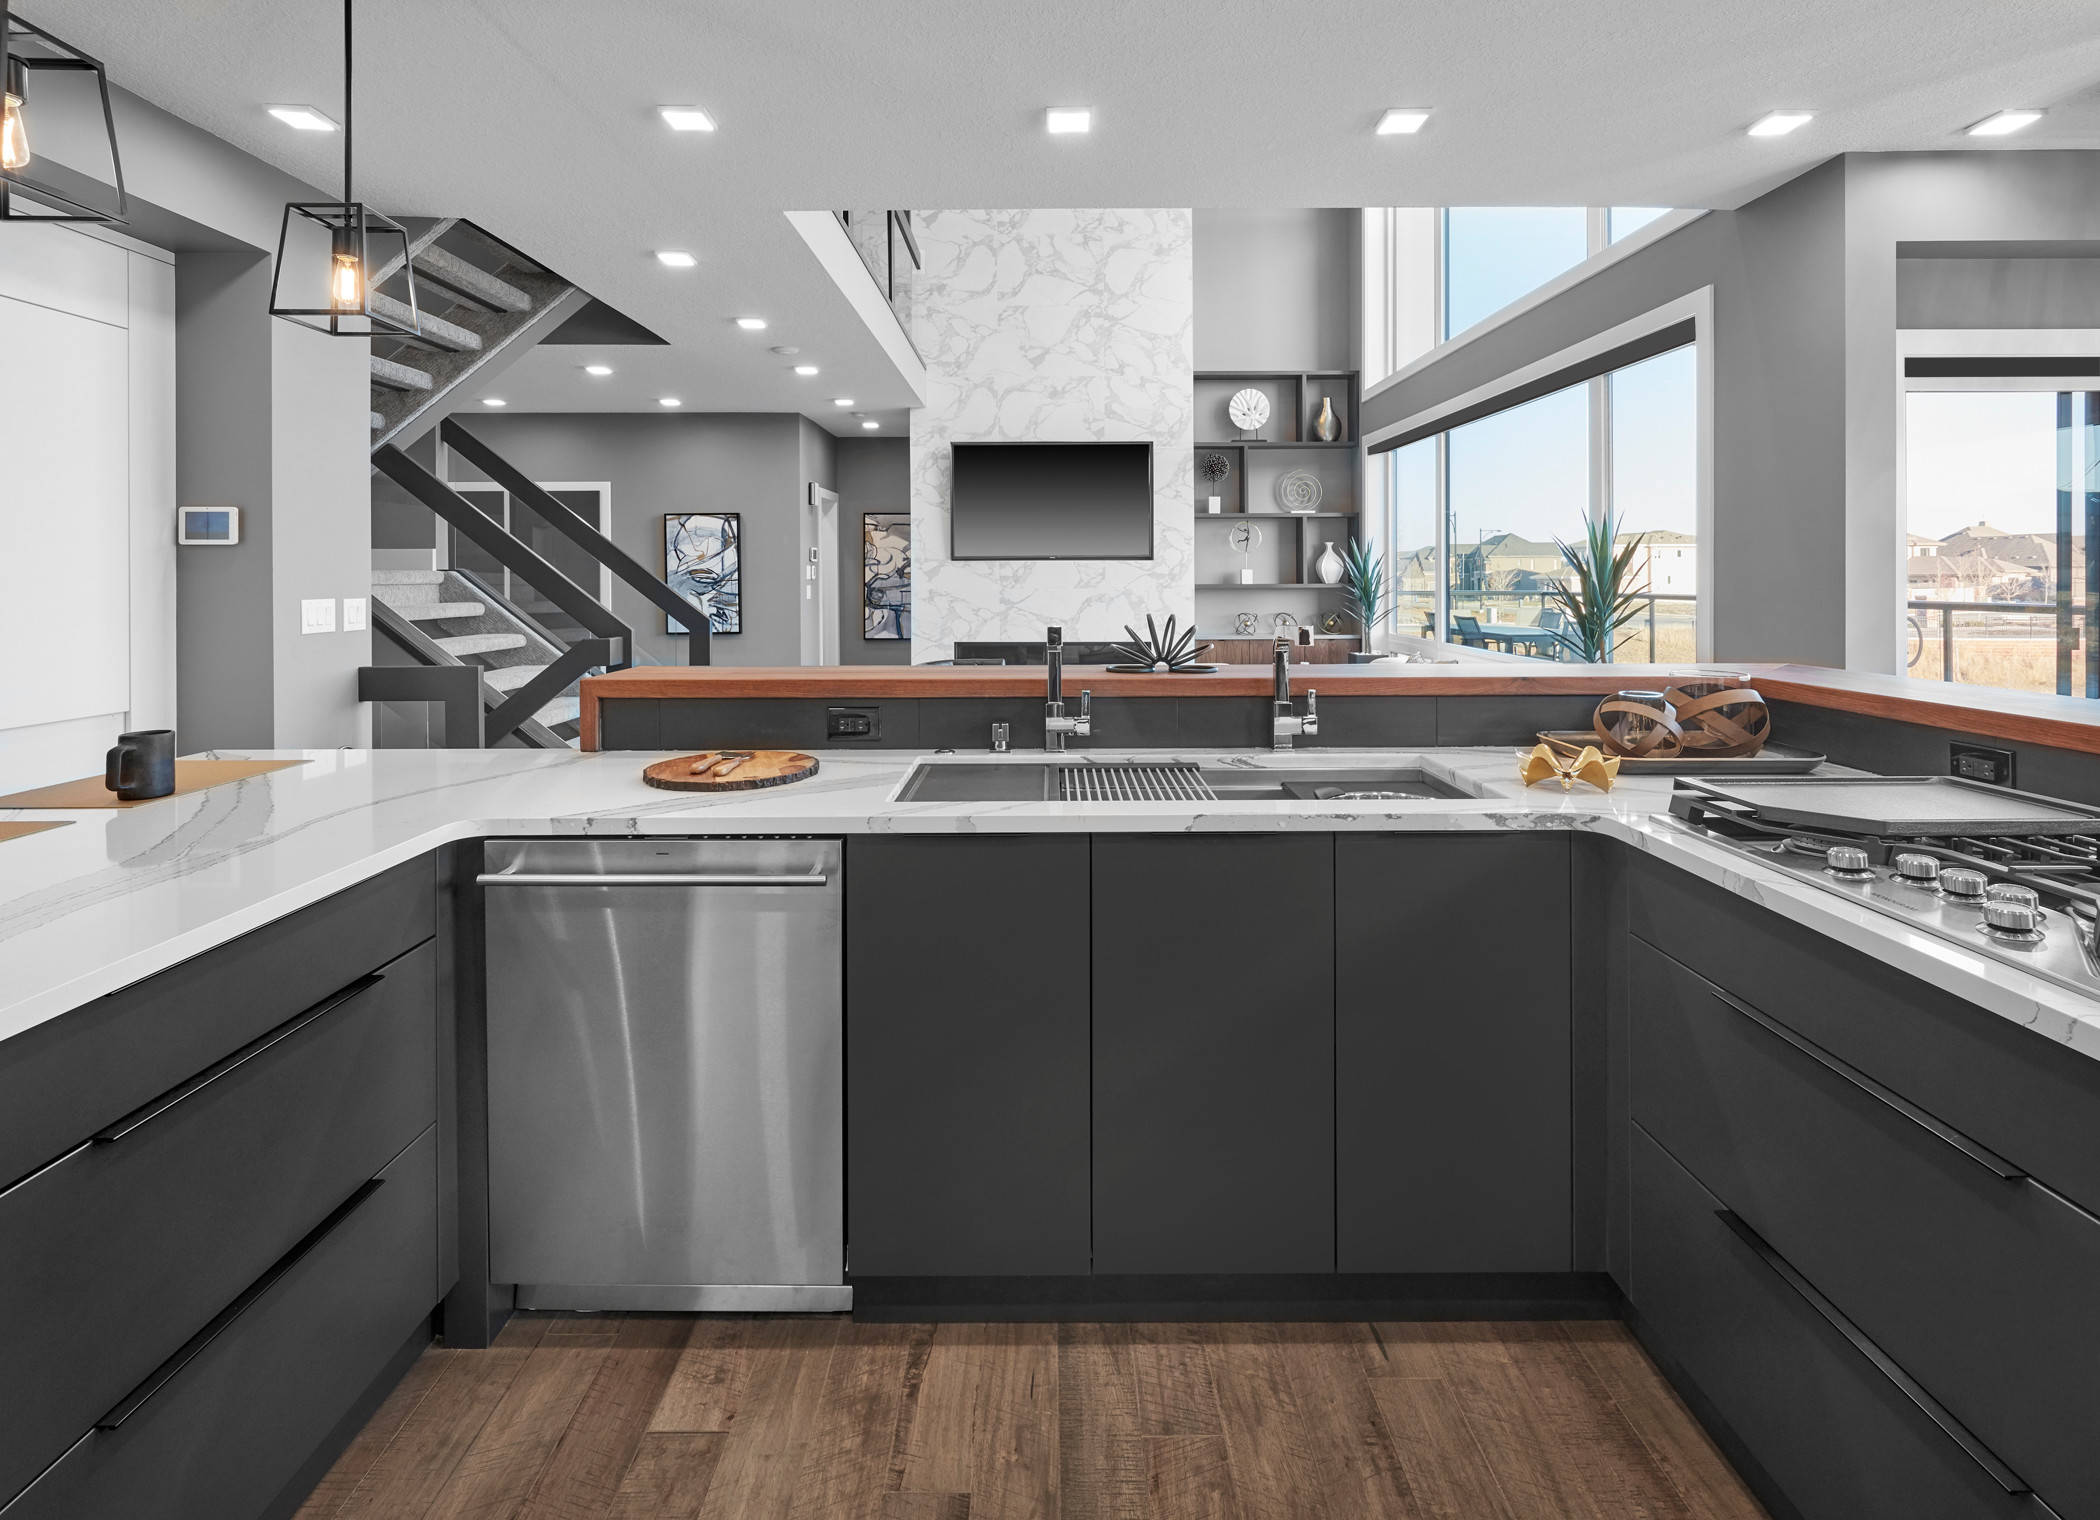 small kitchen ideas and best marble bar design with wooden.htm 75 beautiful black kitchen with louvered cabinets pictures   ideas  kitchen with louvered cabinets